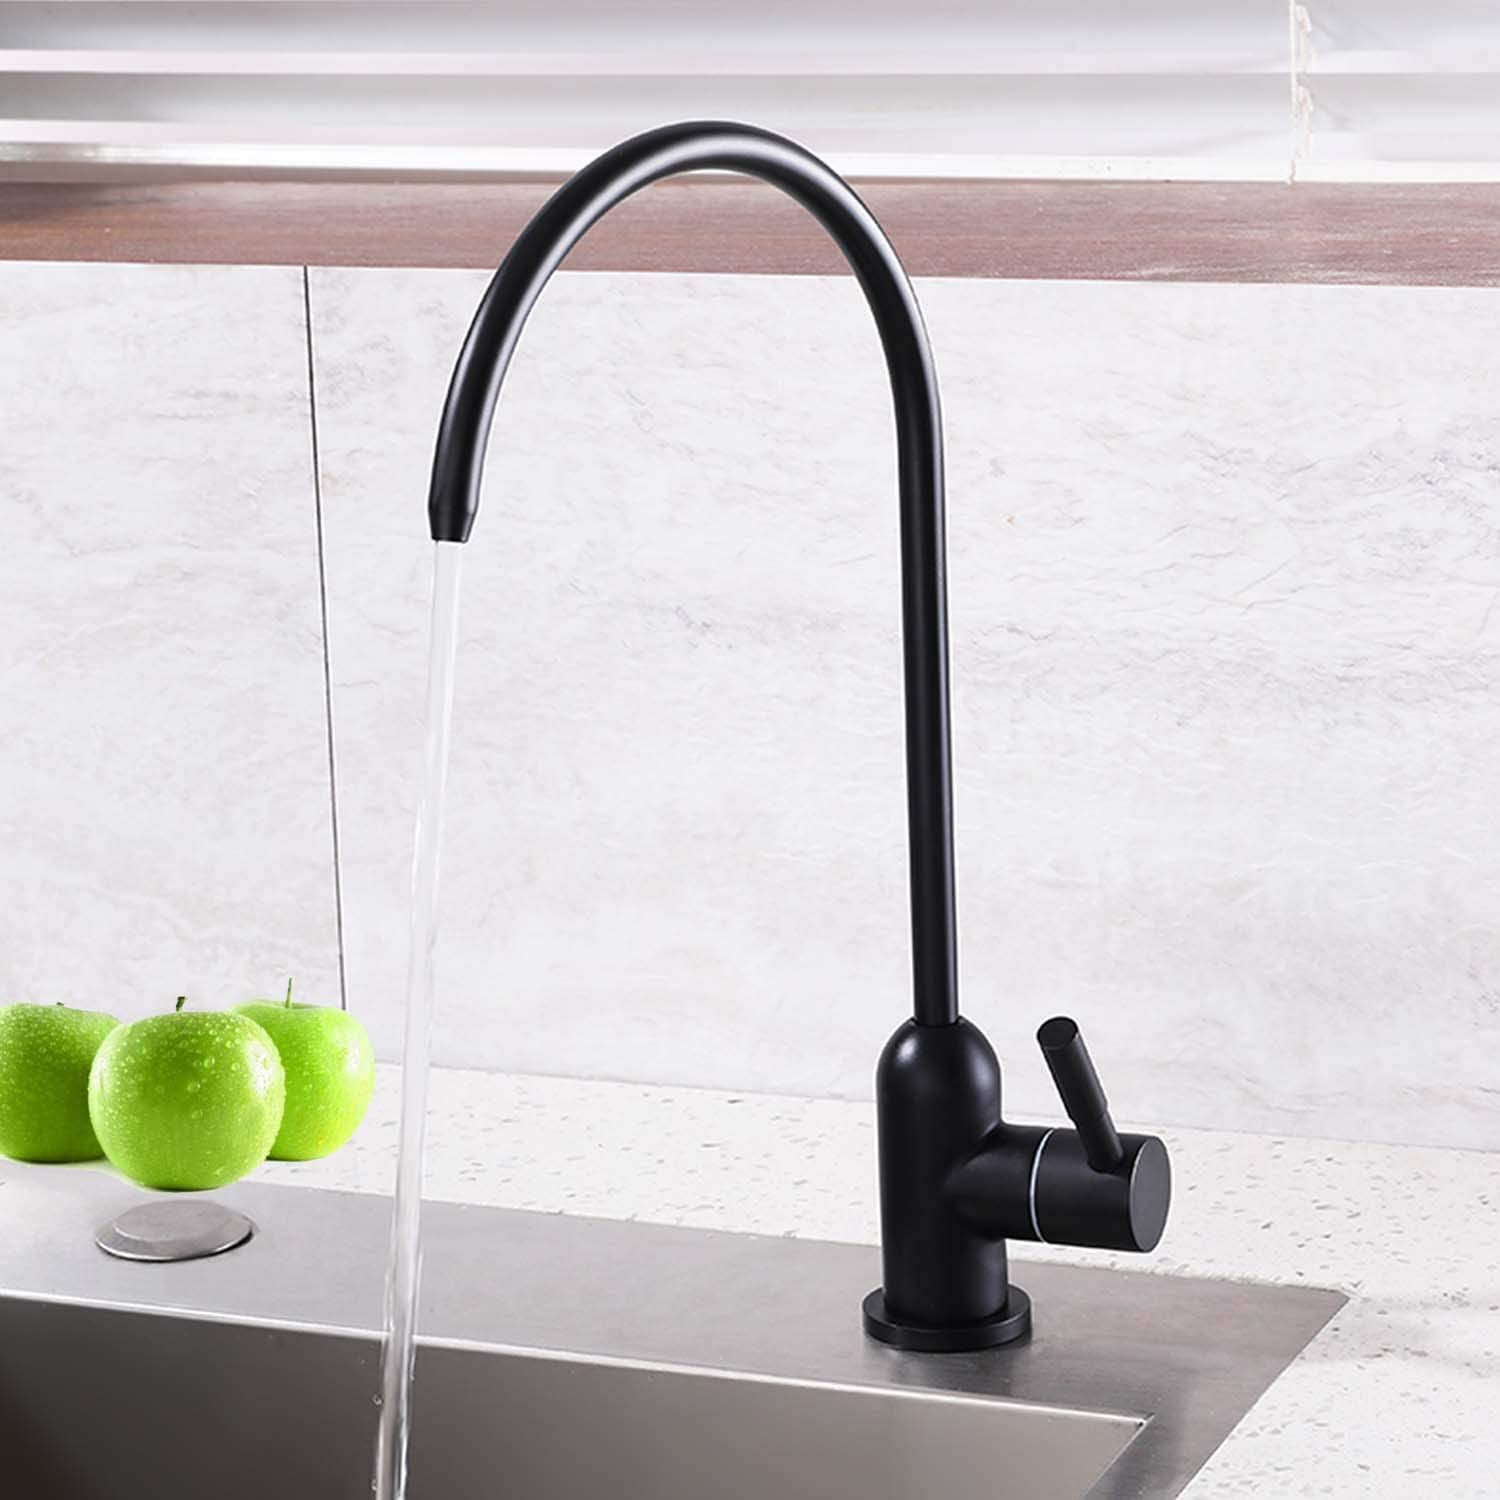 FANHAO Kitchen Water Filter Faucet,Stainless Steel Lead Free Drinking Water Faucet Fits most RO Units or Water Filtration System – Matte Black Finish,1 4 Inch Tube Quick Connector, Non-Air Gap